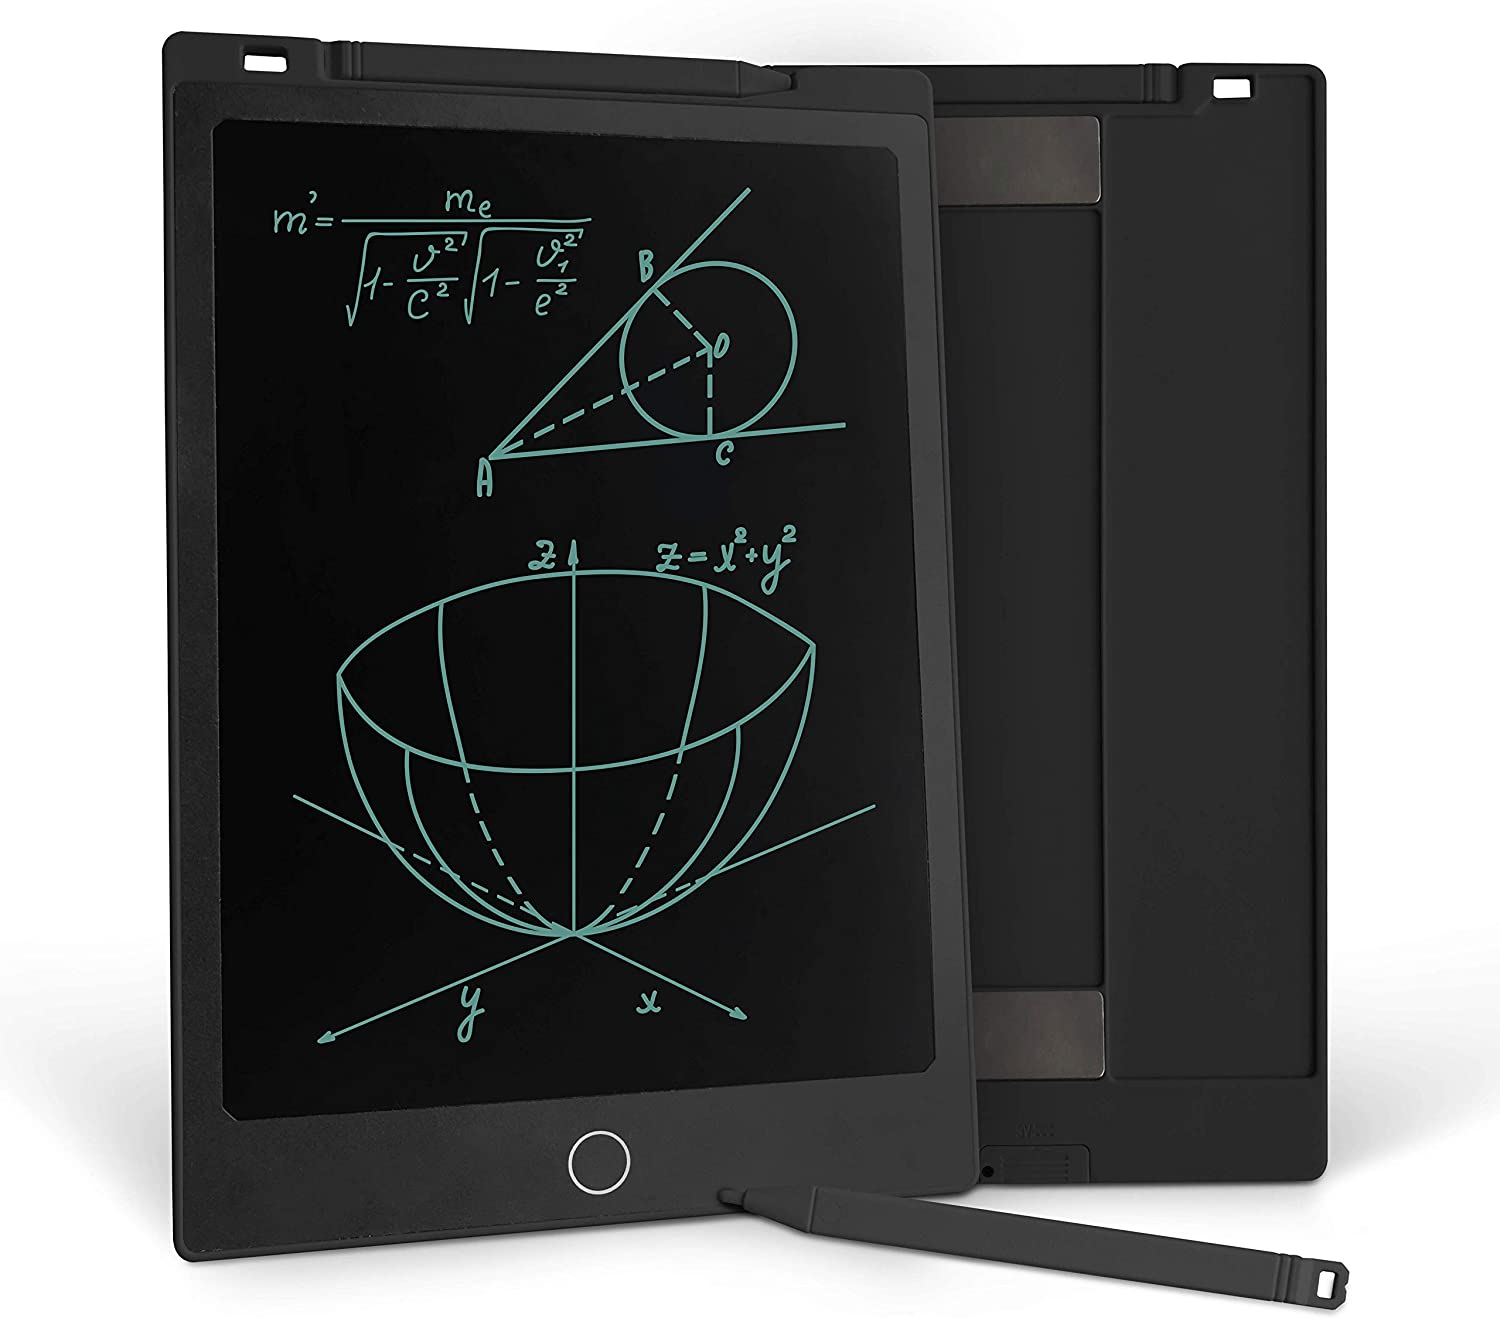 Richgv LCD Writing Tablet, 11 Inches Digital Electronic Graphics Tablet Ewriter Built-in Magnet Mini Board Handwriting Pad Suitable for Kids and Adults Black(2 Battery)